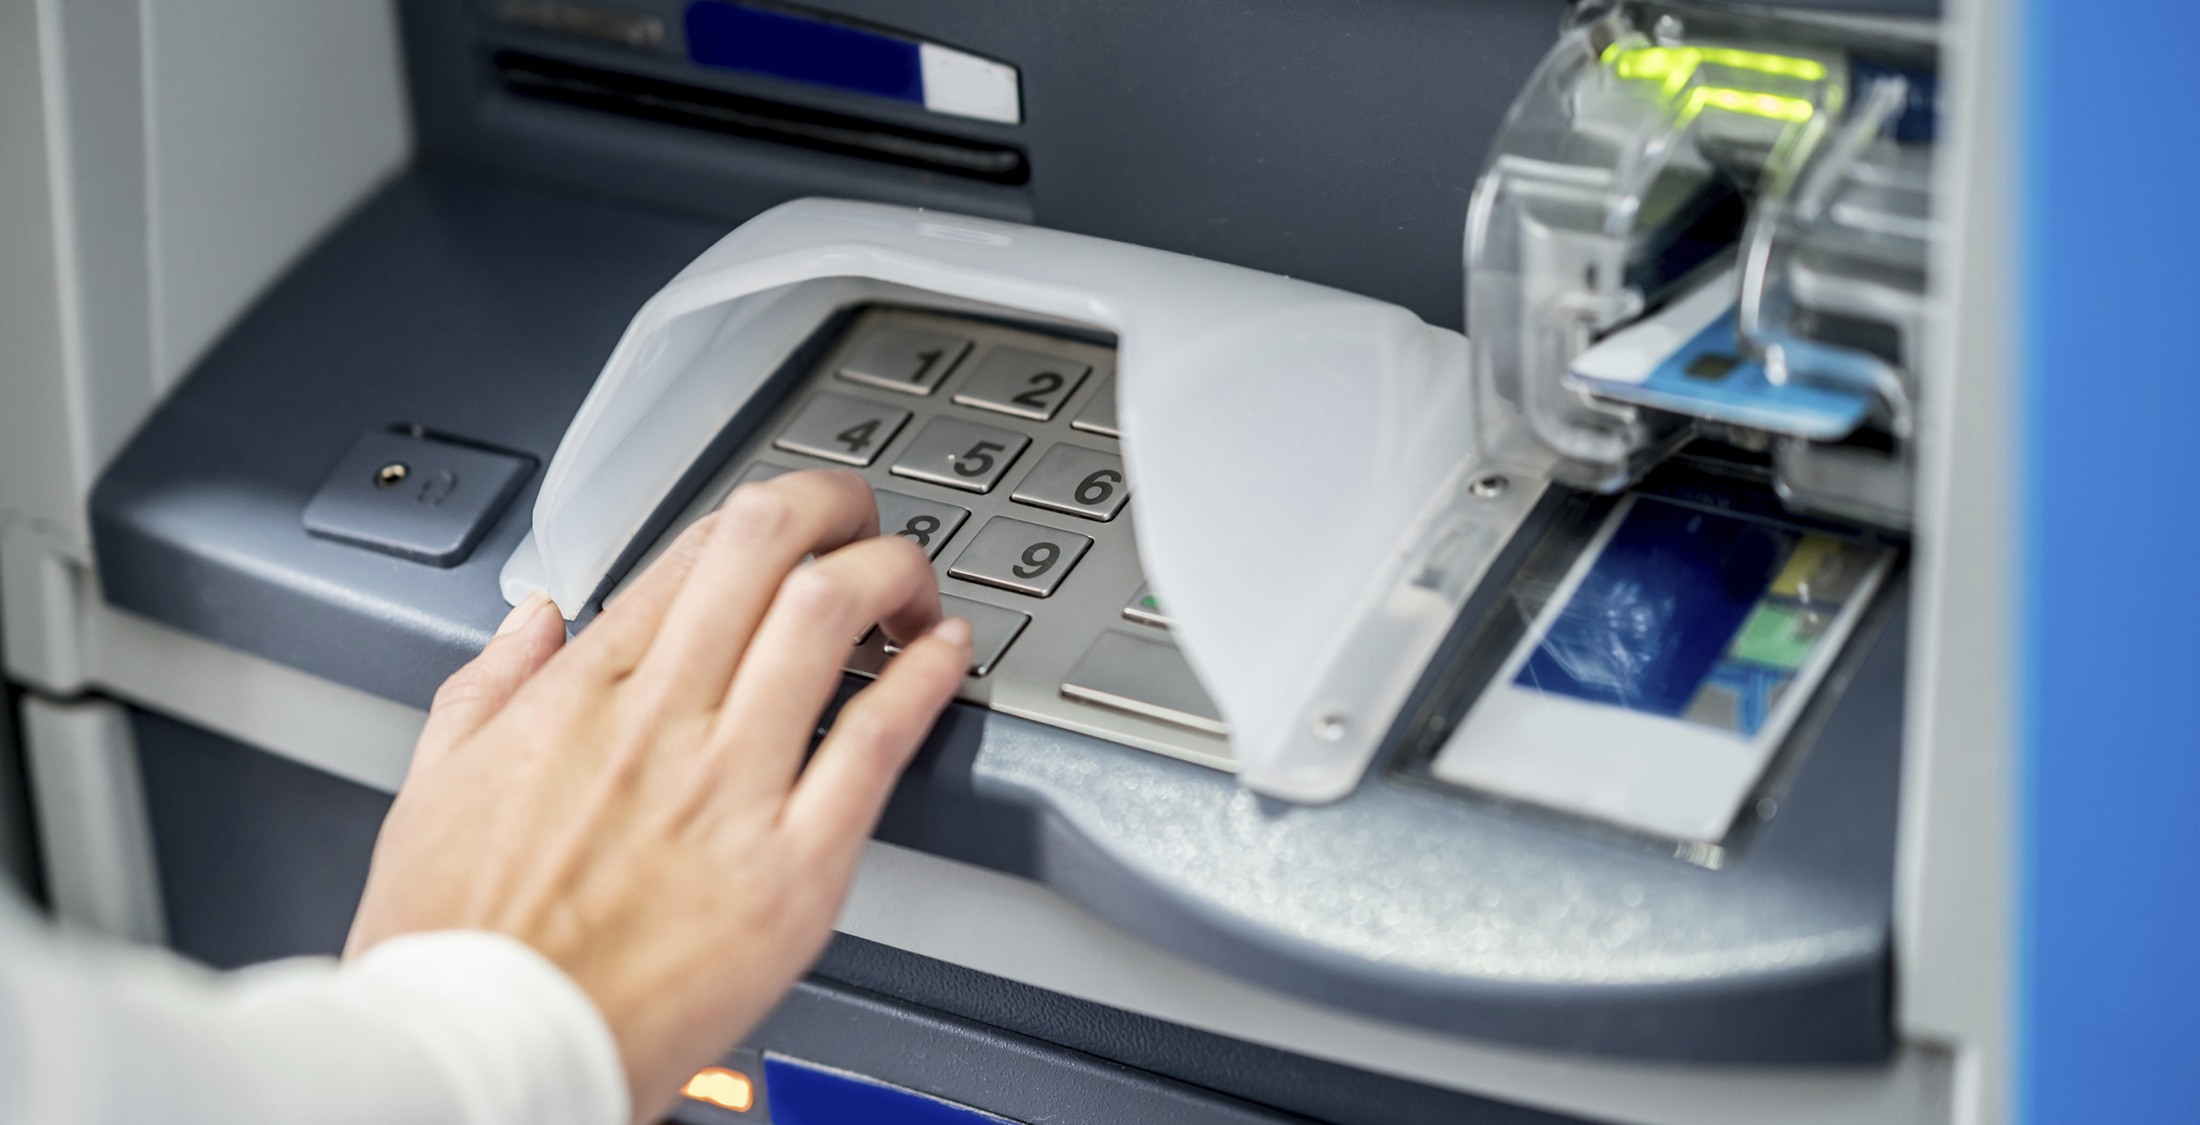 type in pin on atm